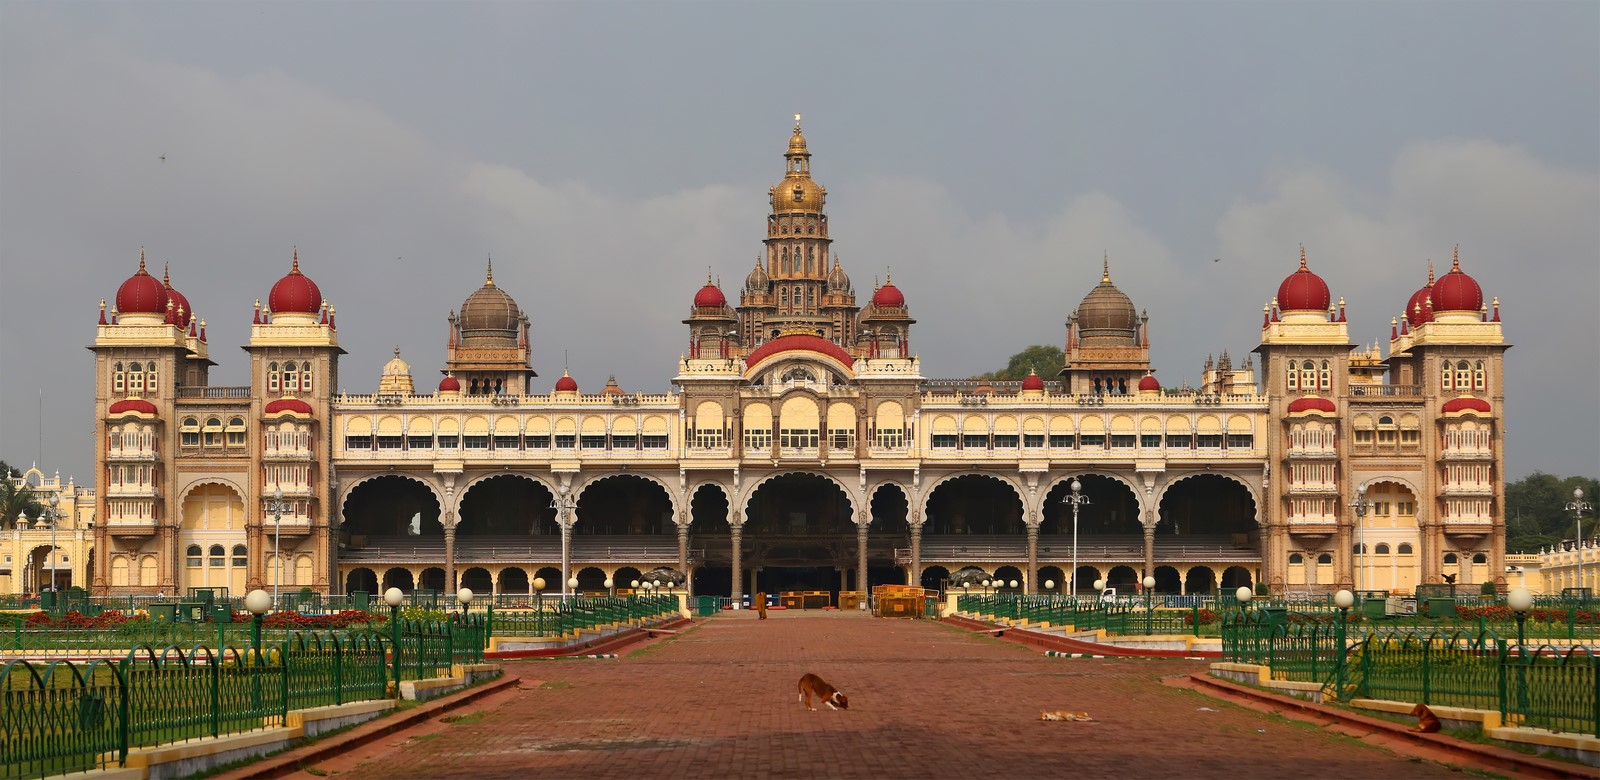 10 Historical buildings in India where architecture reflects ancient stories - Sheet2